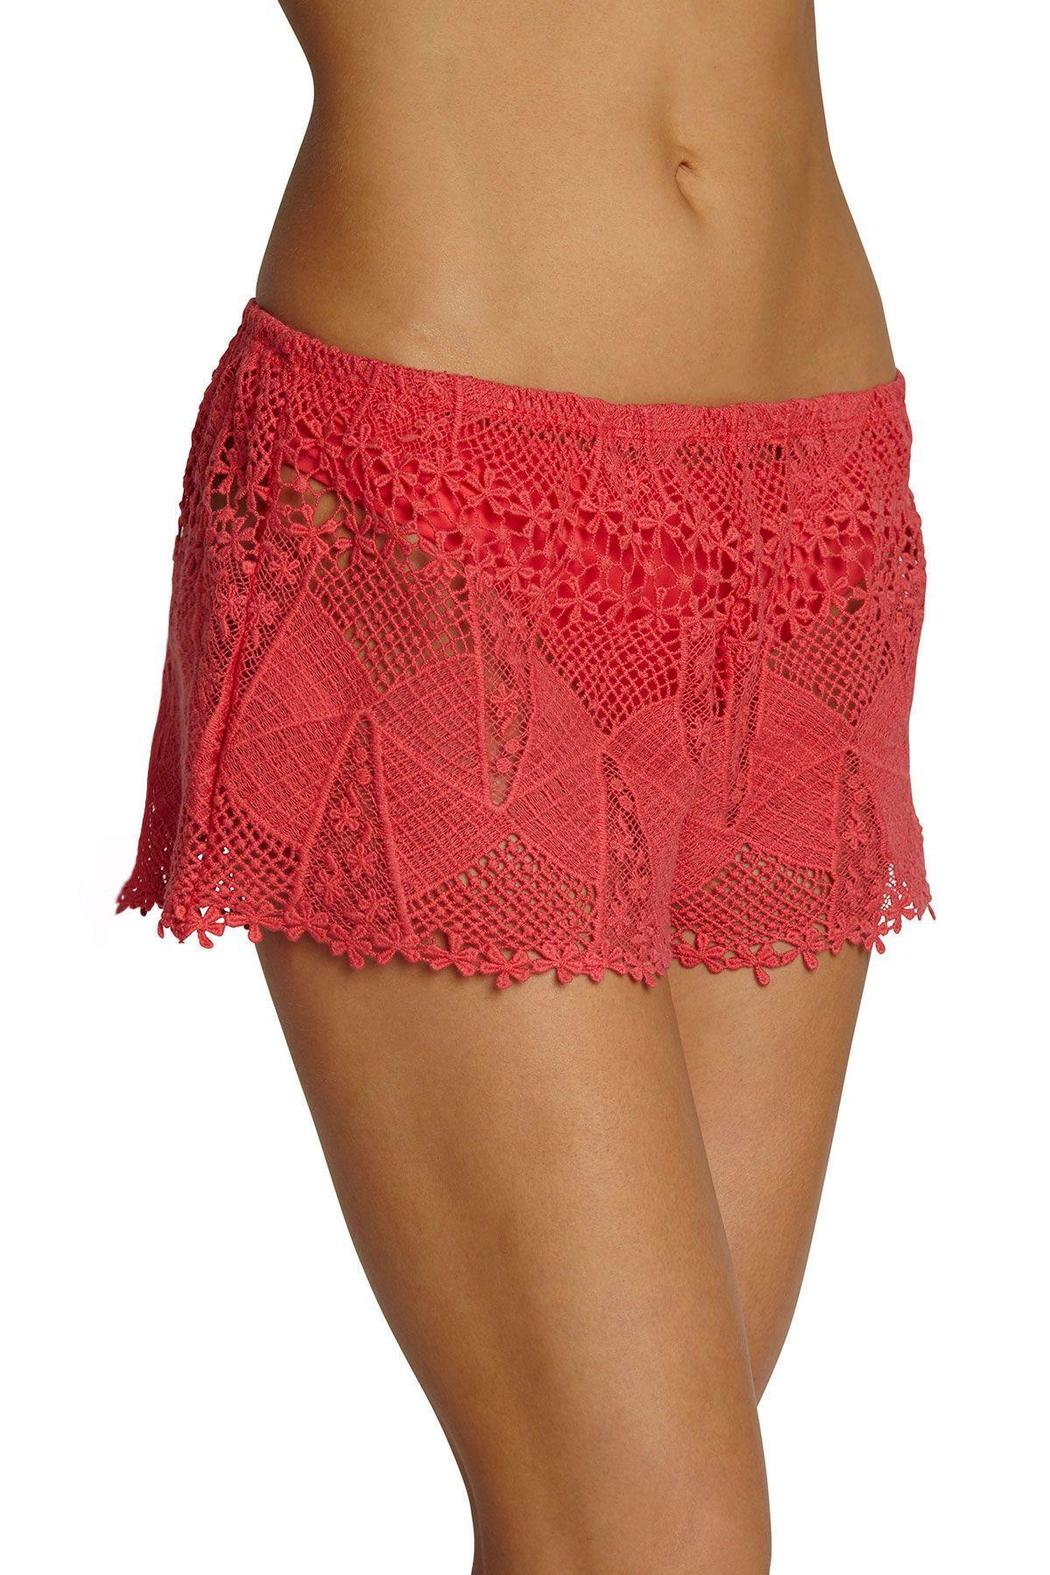 Eberjey Guajira Lace Shorts - Side Cropped Image